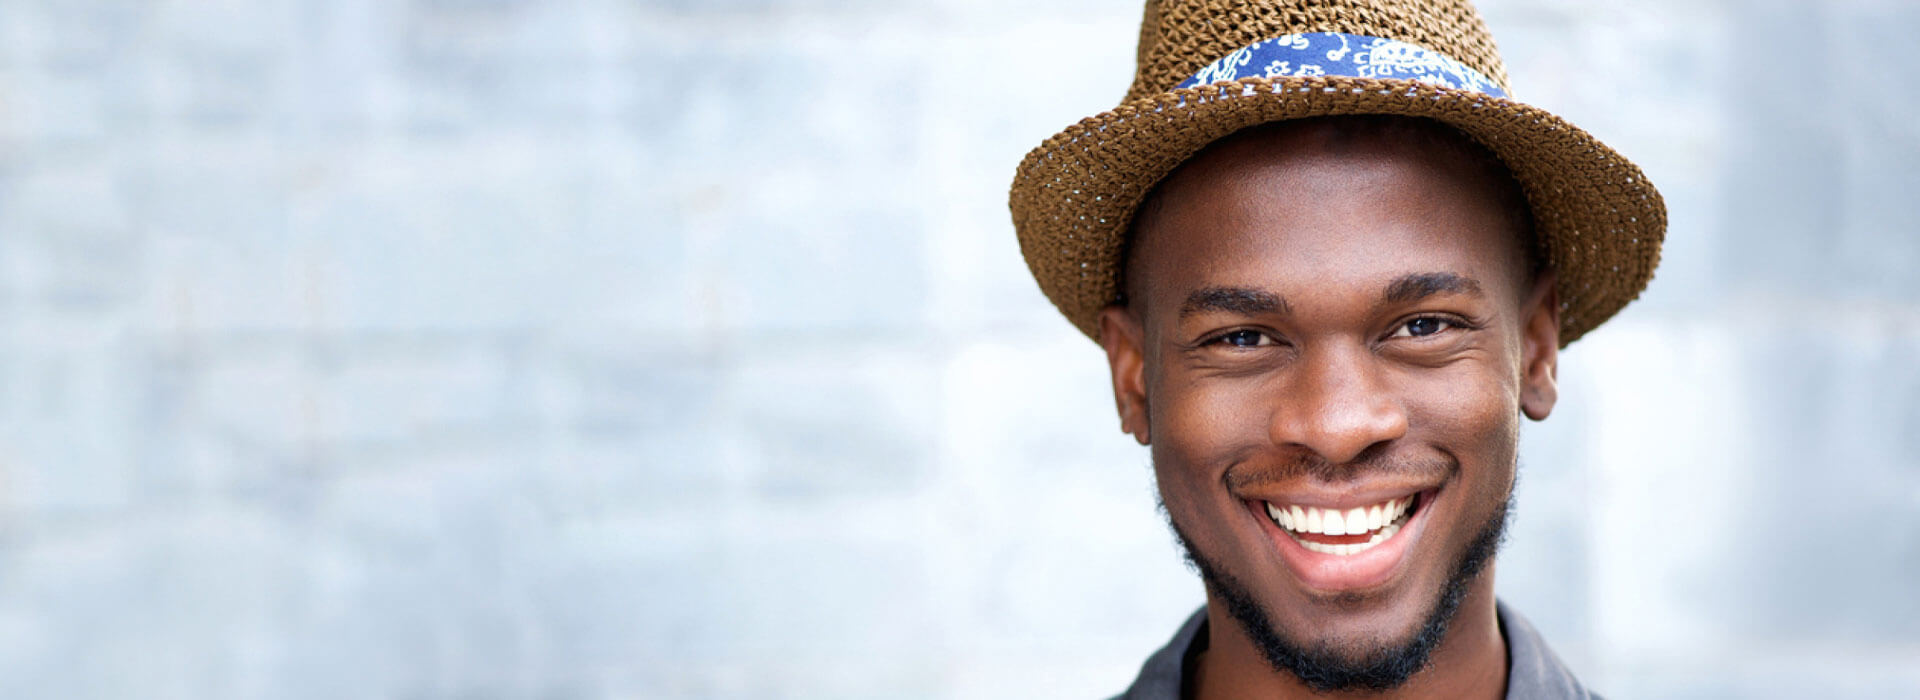 Achieve a Perfect Smile in Weeks